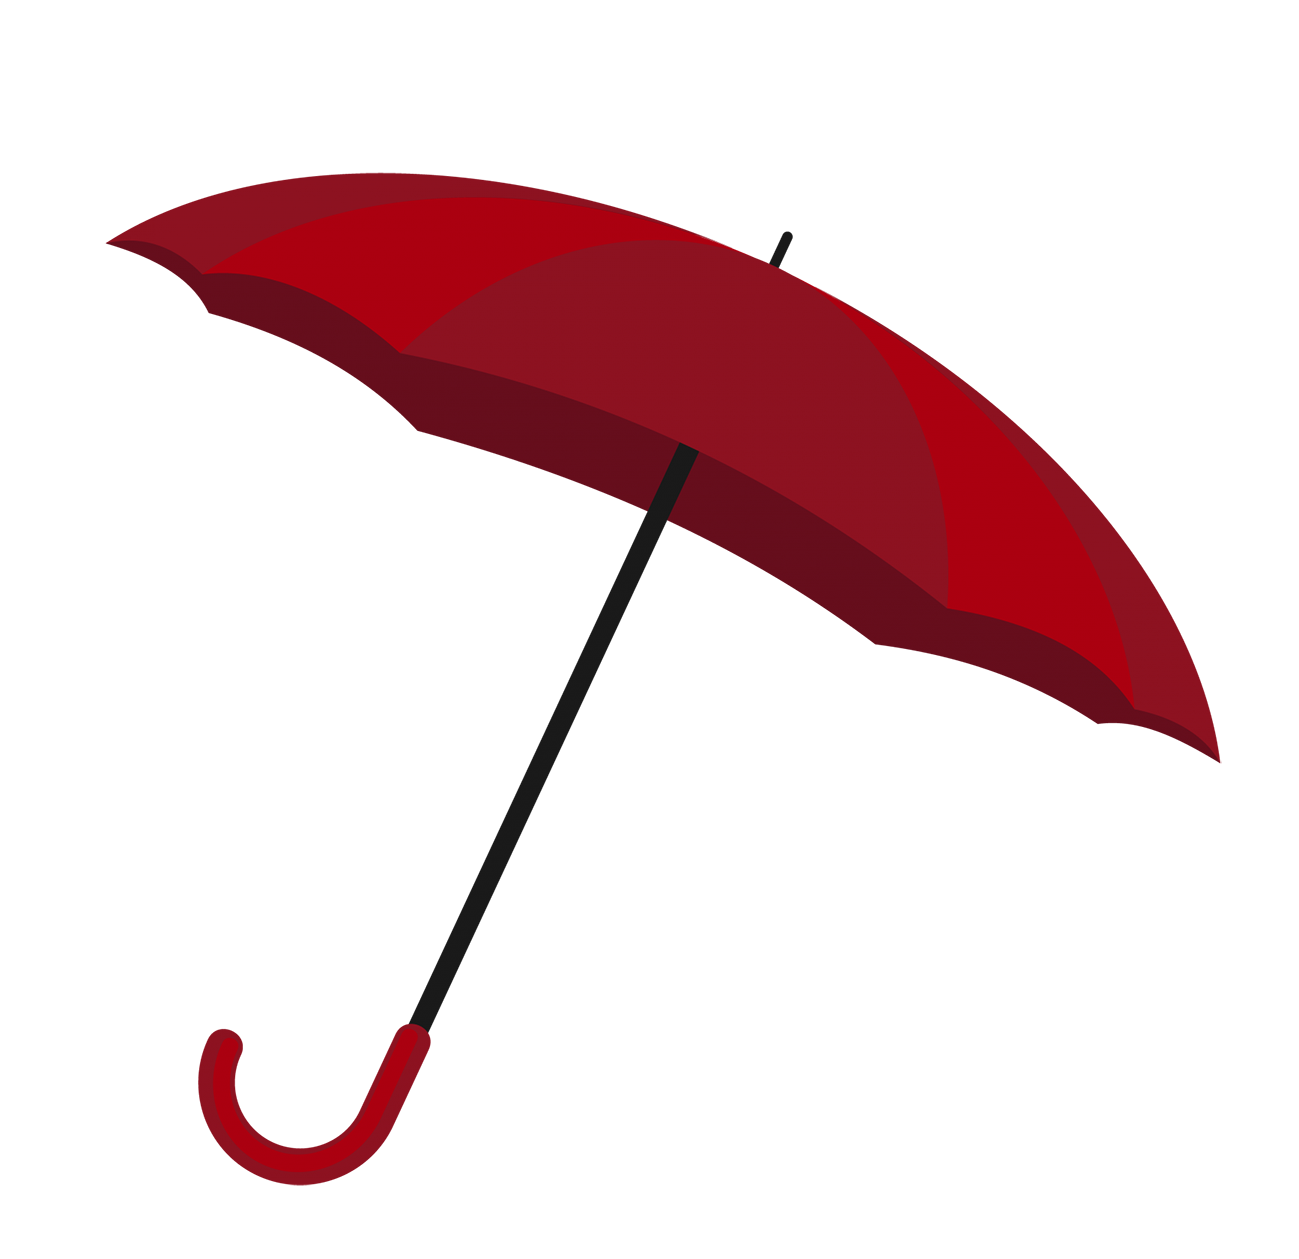 red umbrella clipart